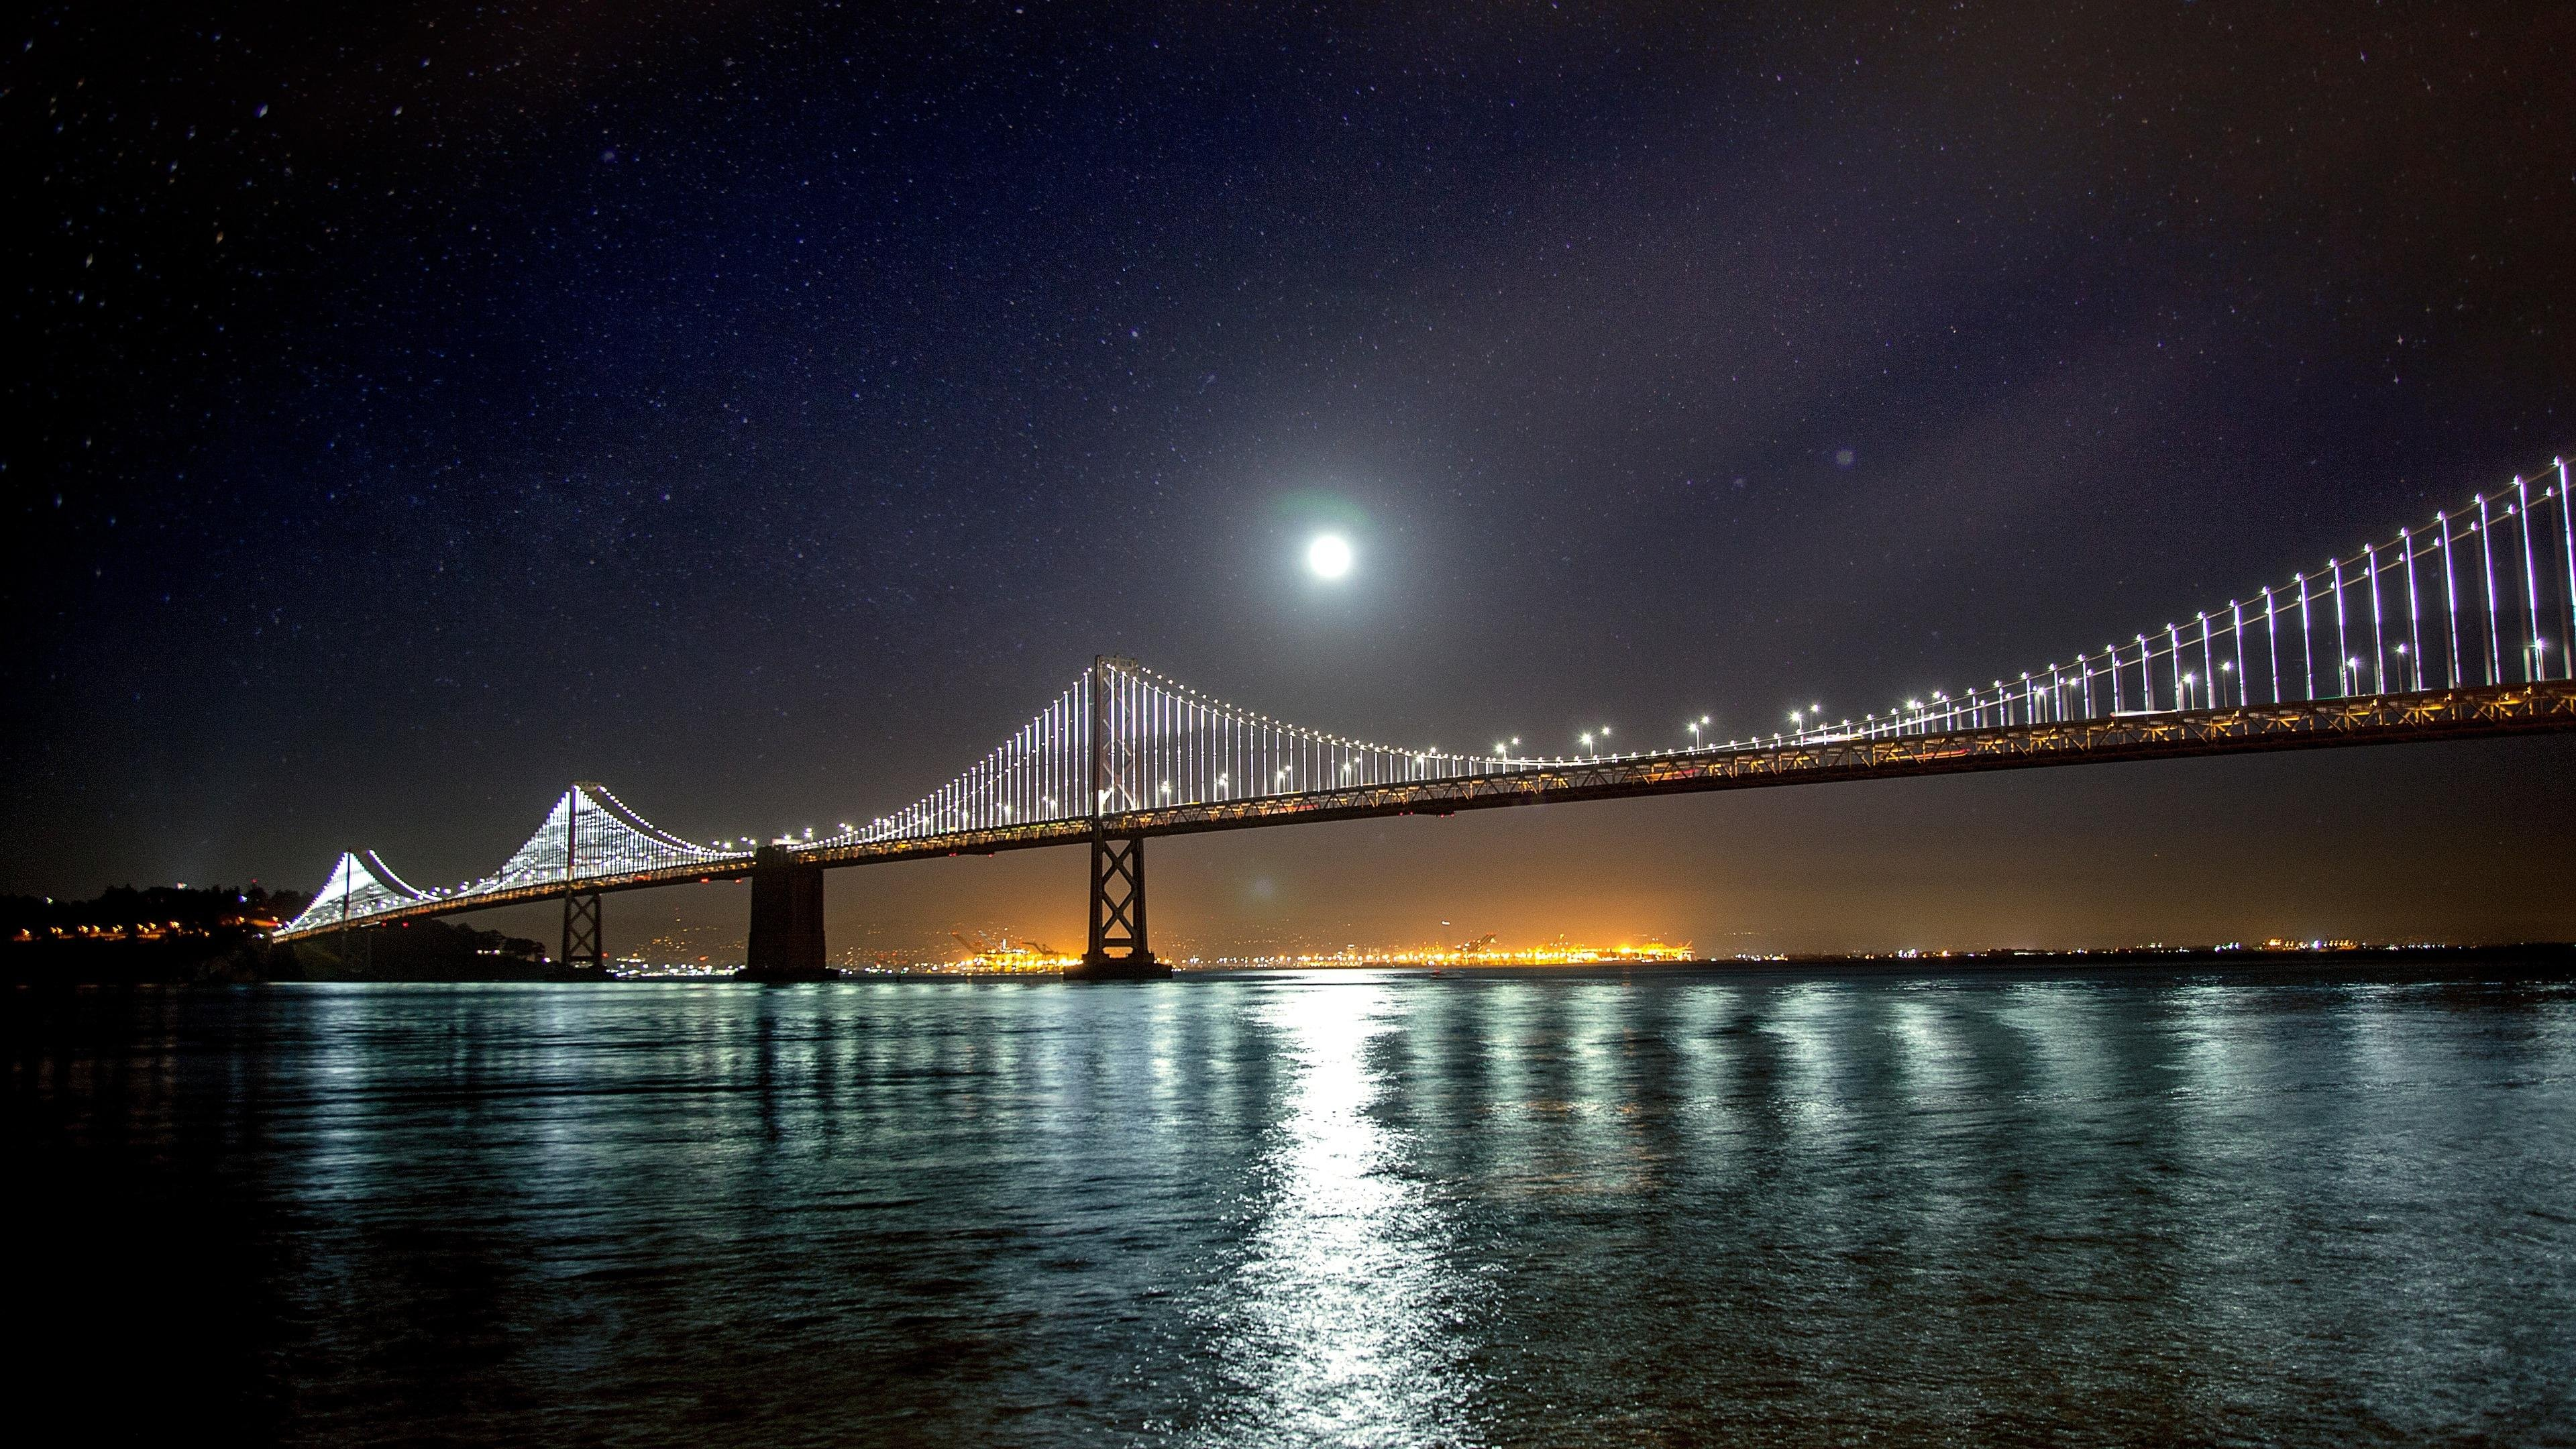 Night Bridge in the Lights Stars and Moon wallpaper